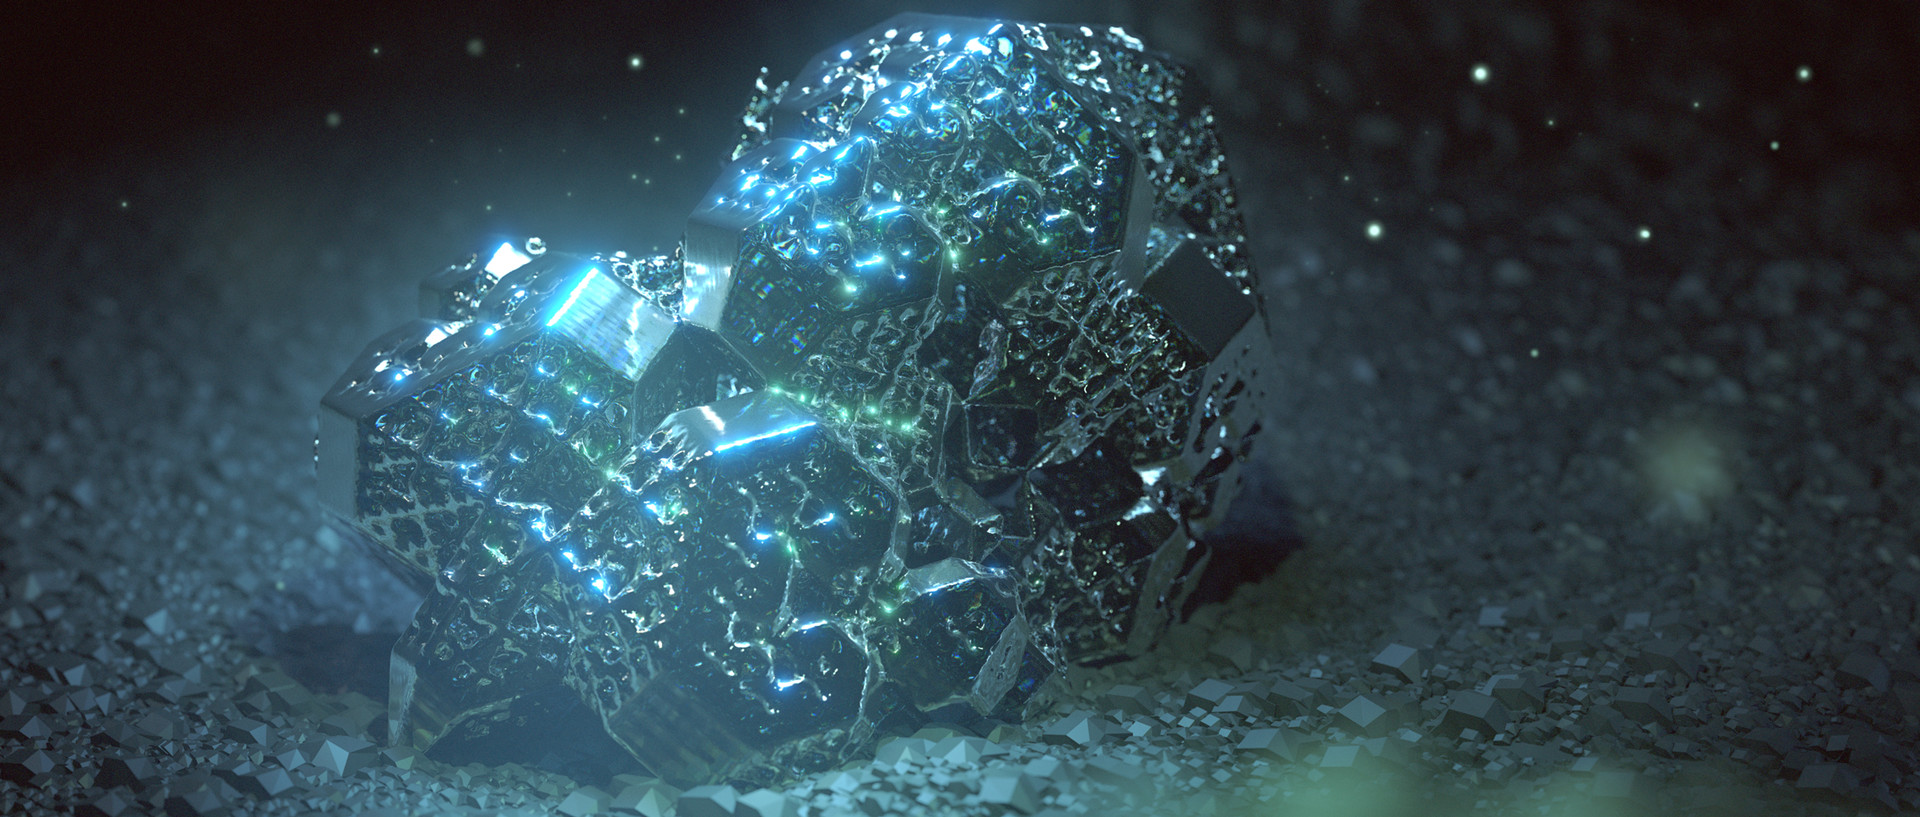 Samson michel final render web space crystal